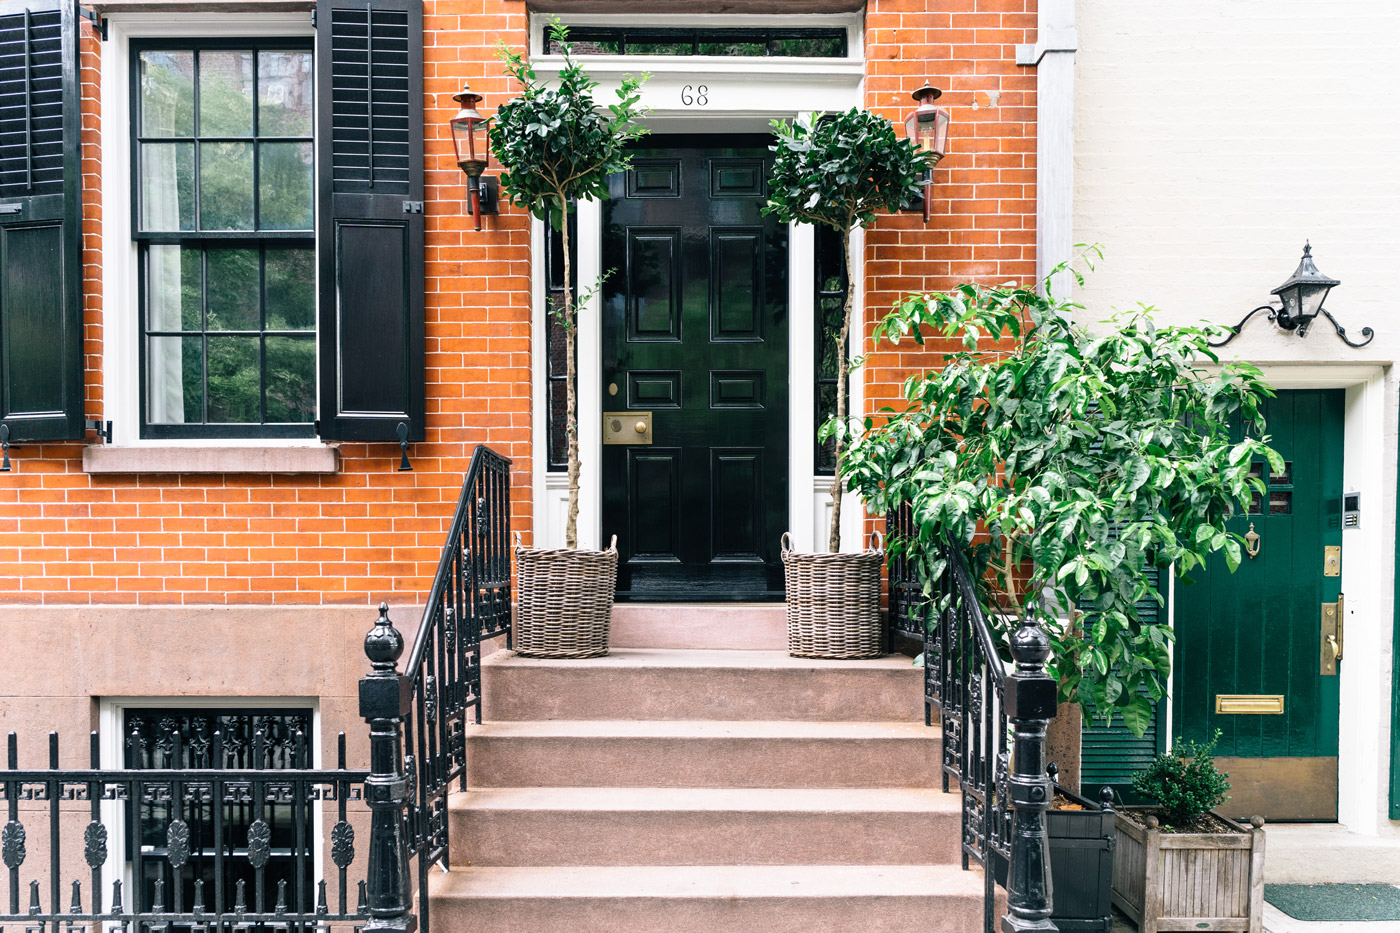 Townhomes for sale in West Village, Manhattan